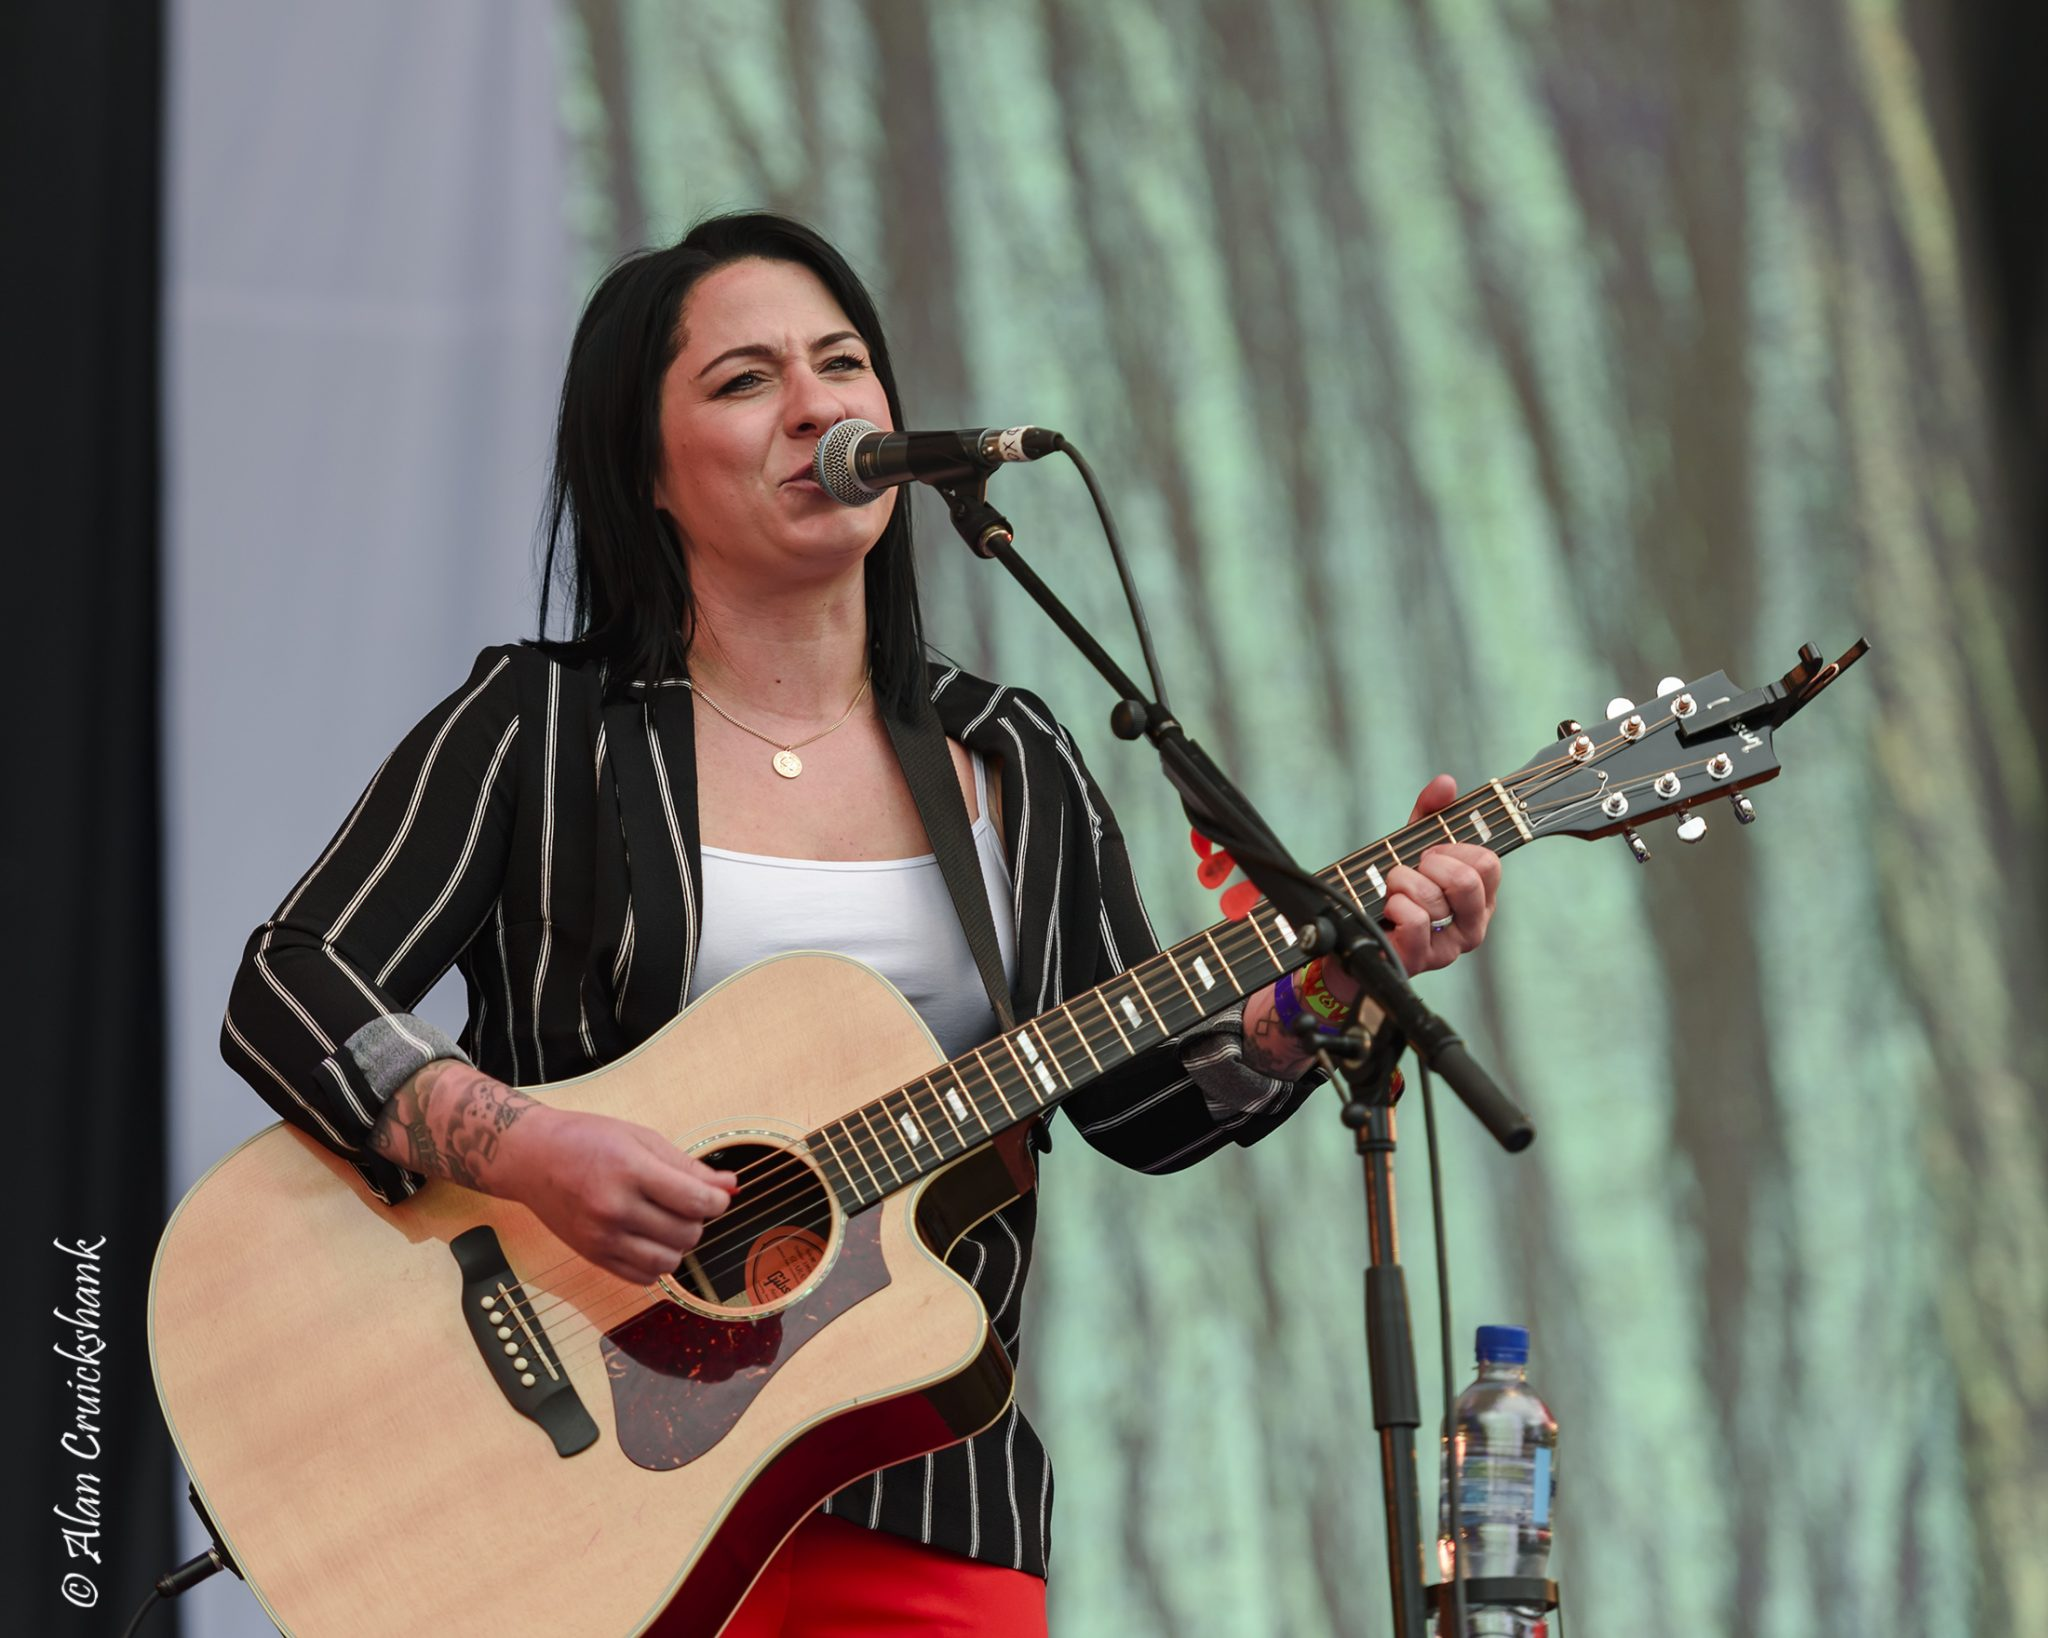 wIYVD - Lucy Spraggan Friday Belladrum 2018 - IMAGES